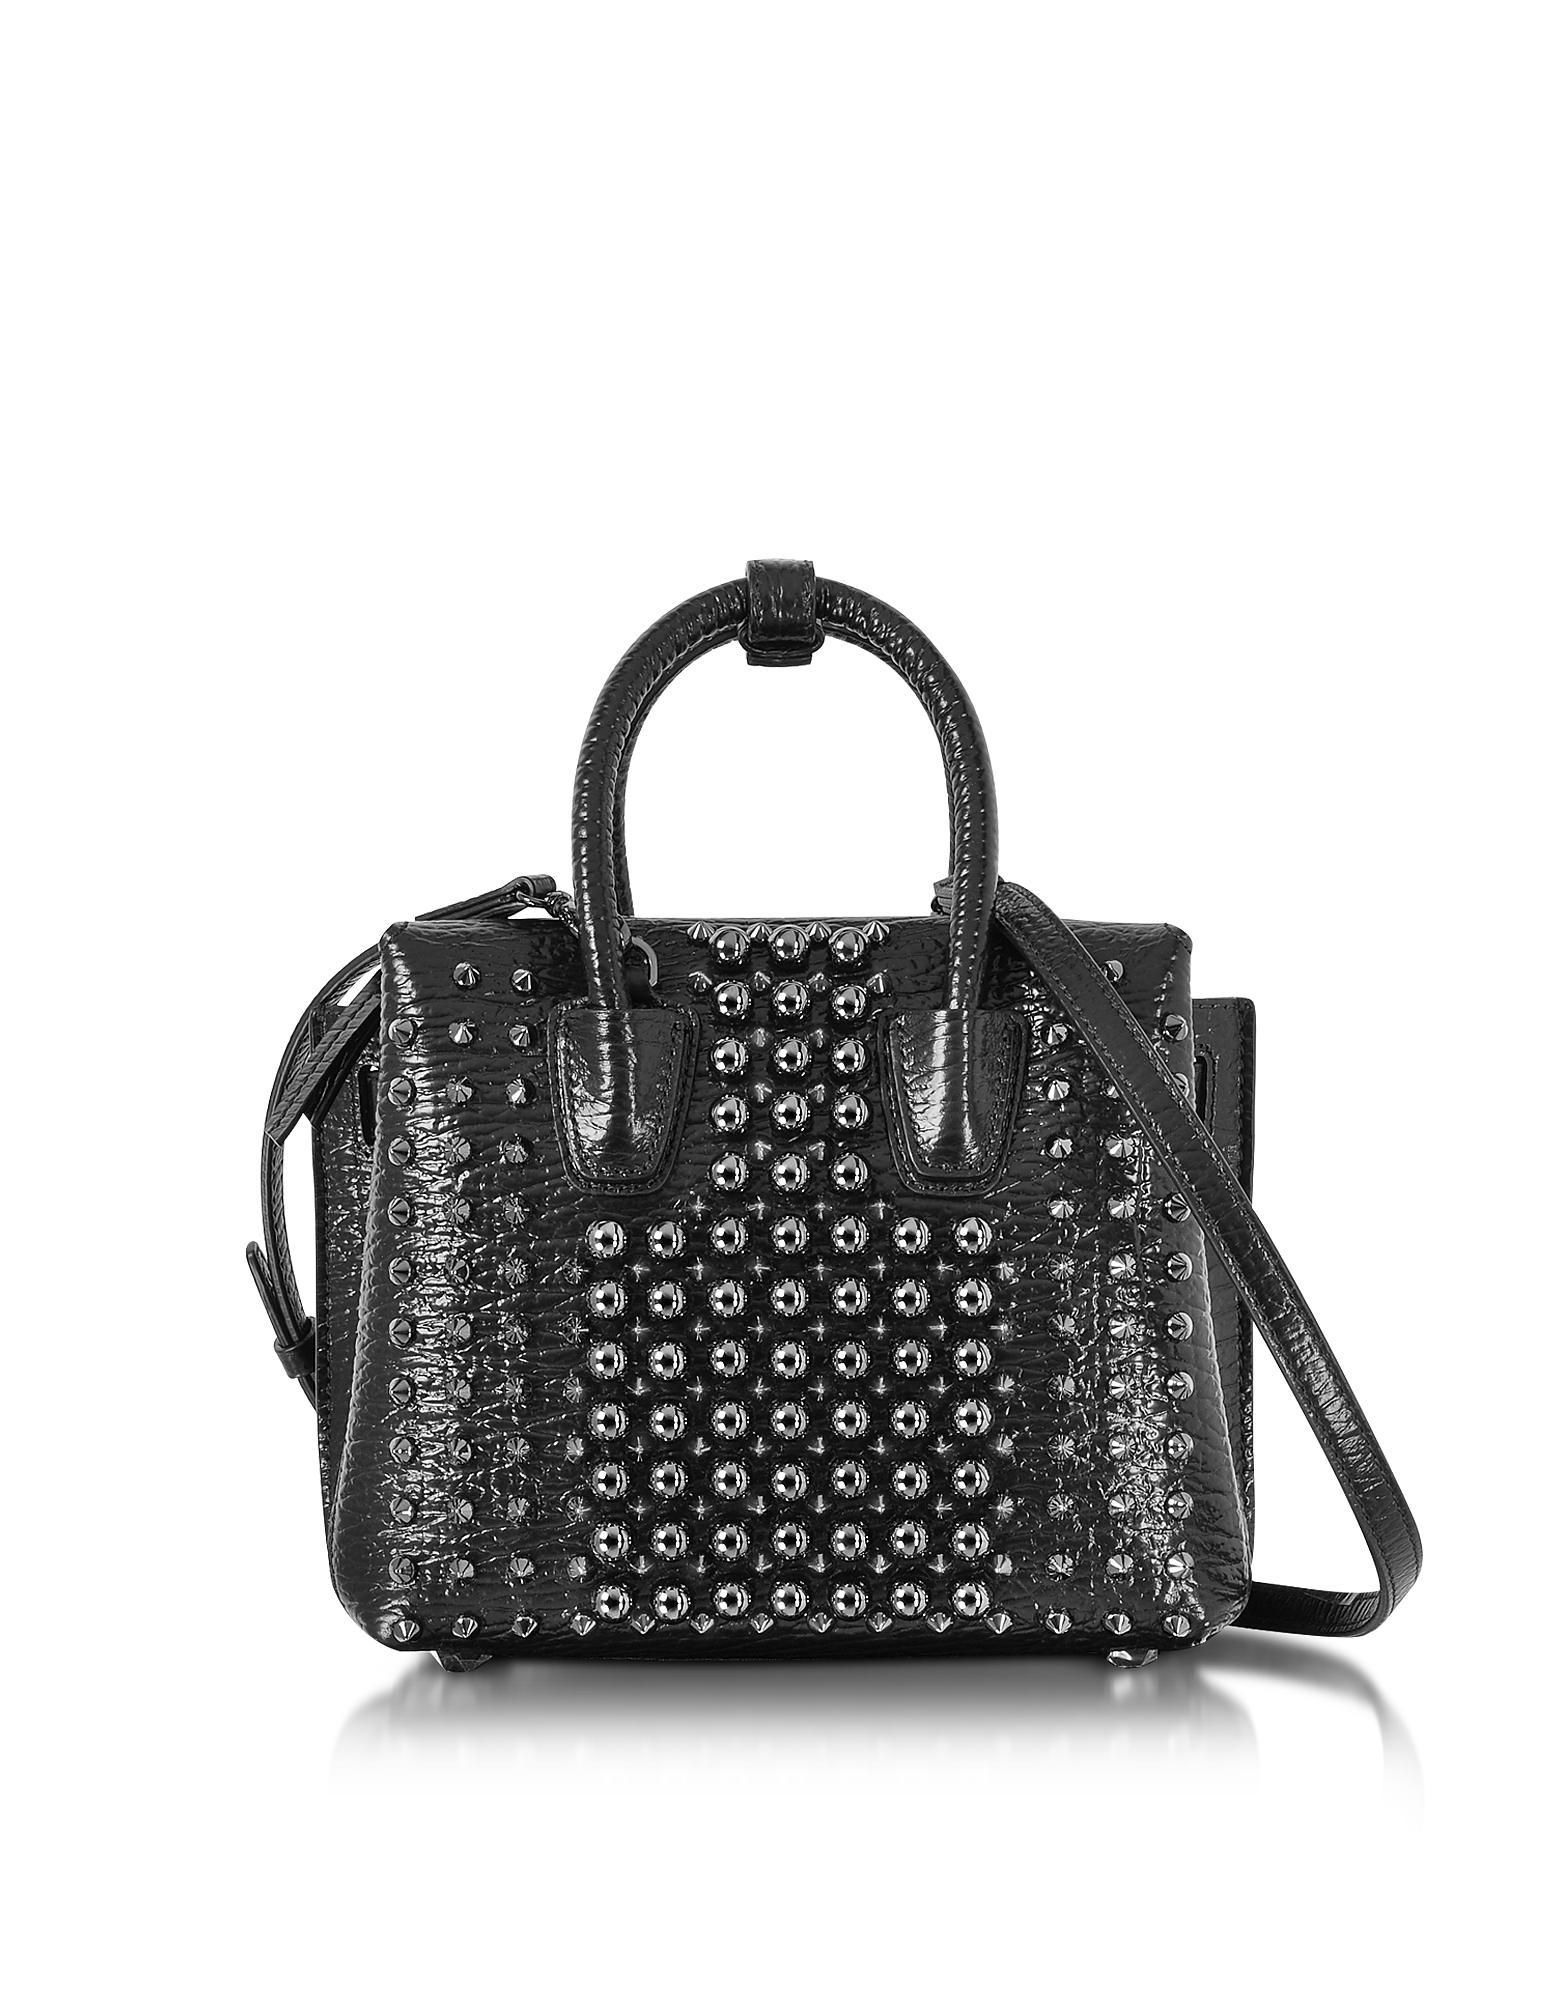 MCM Handbags, Black Mini Milla Pearl Studs Tote Bag